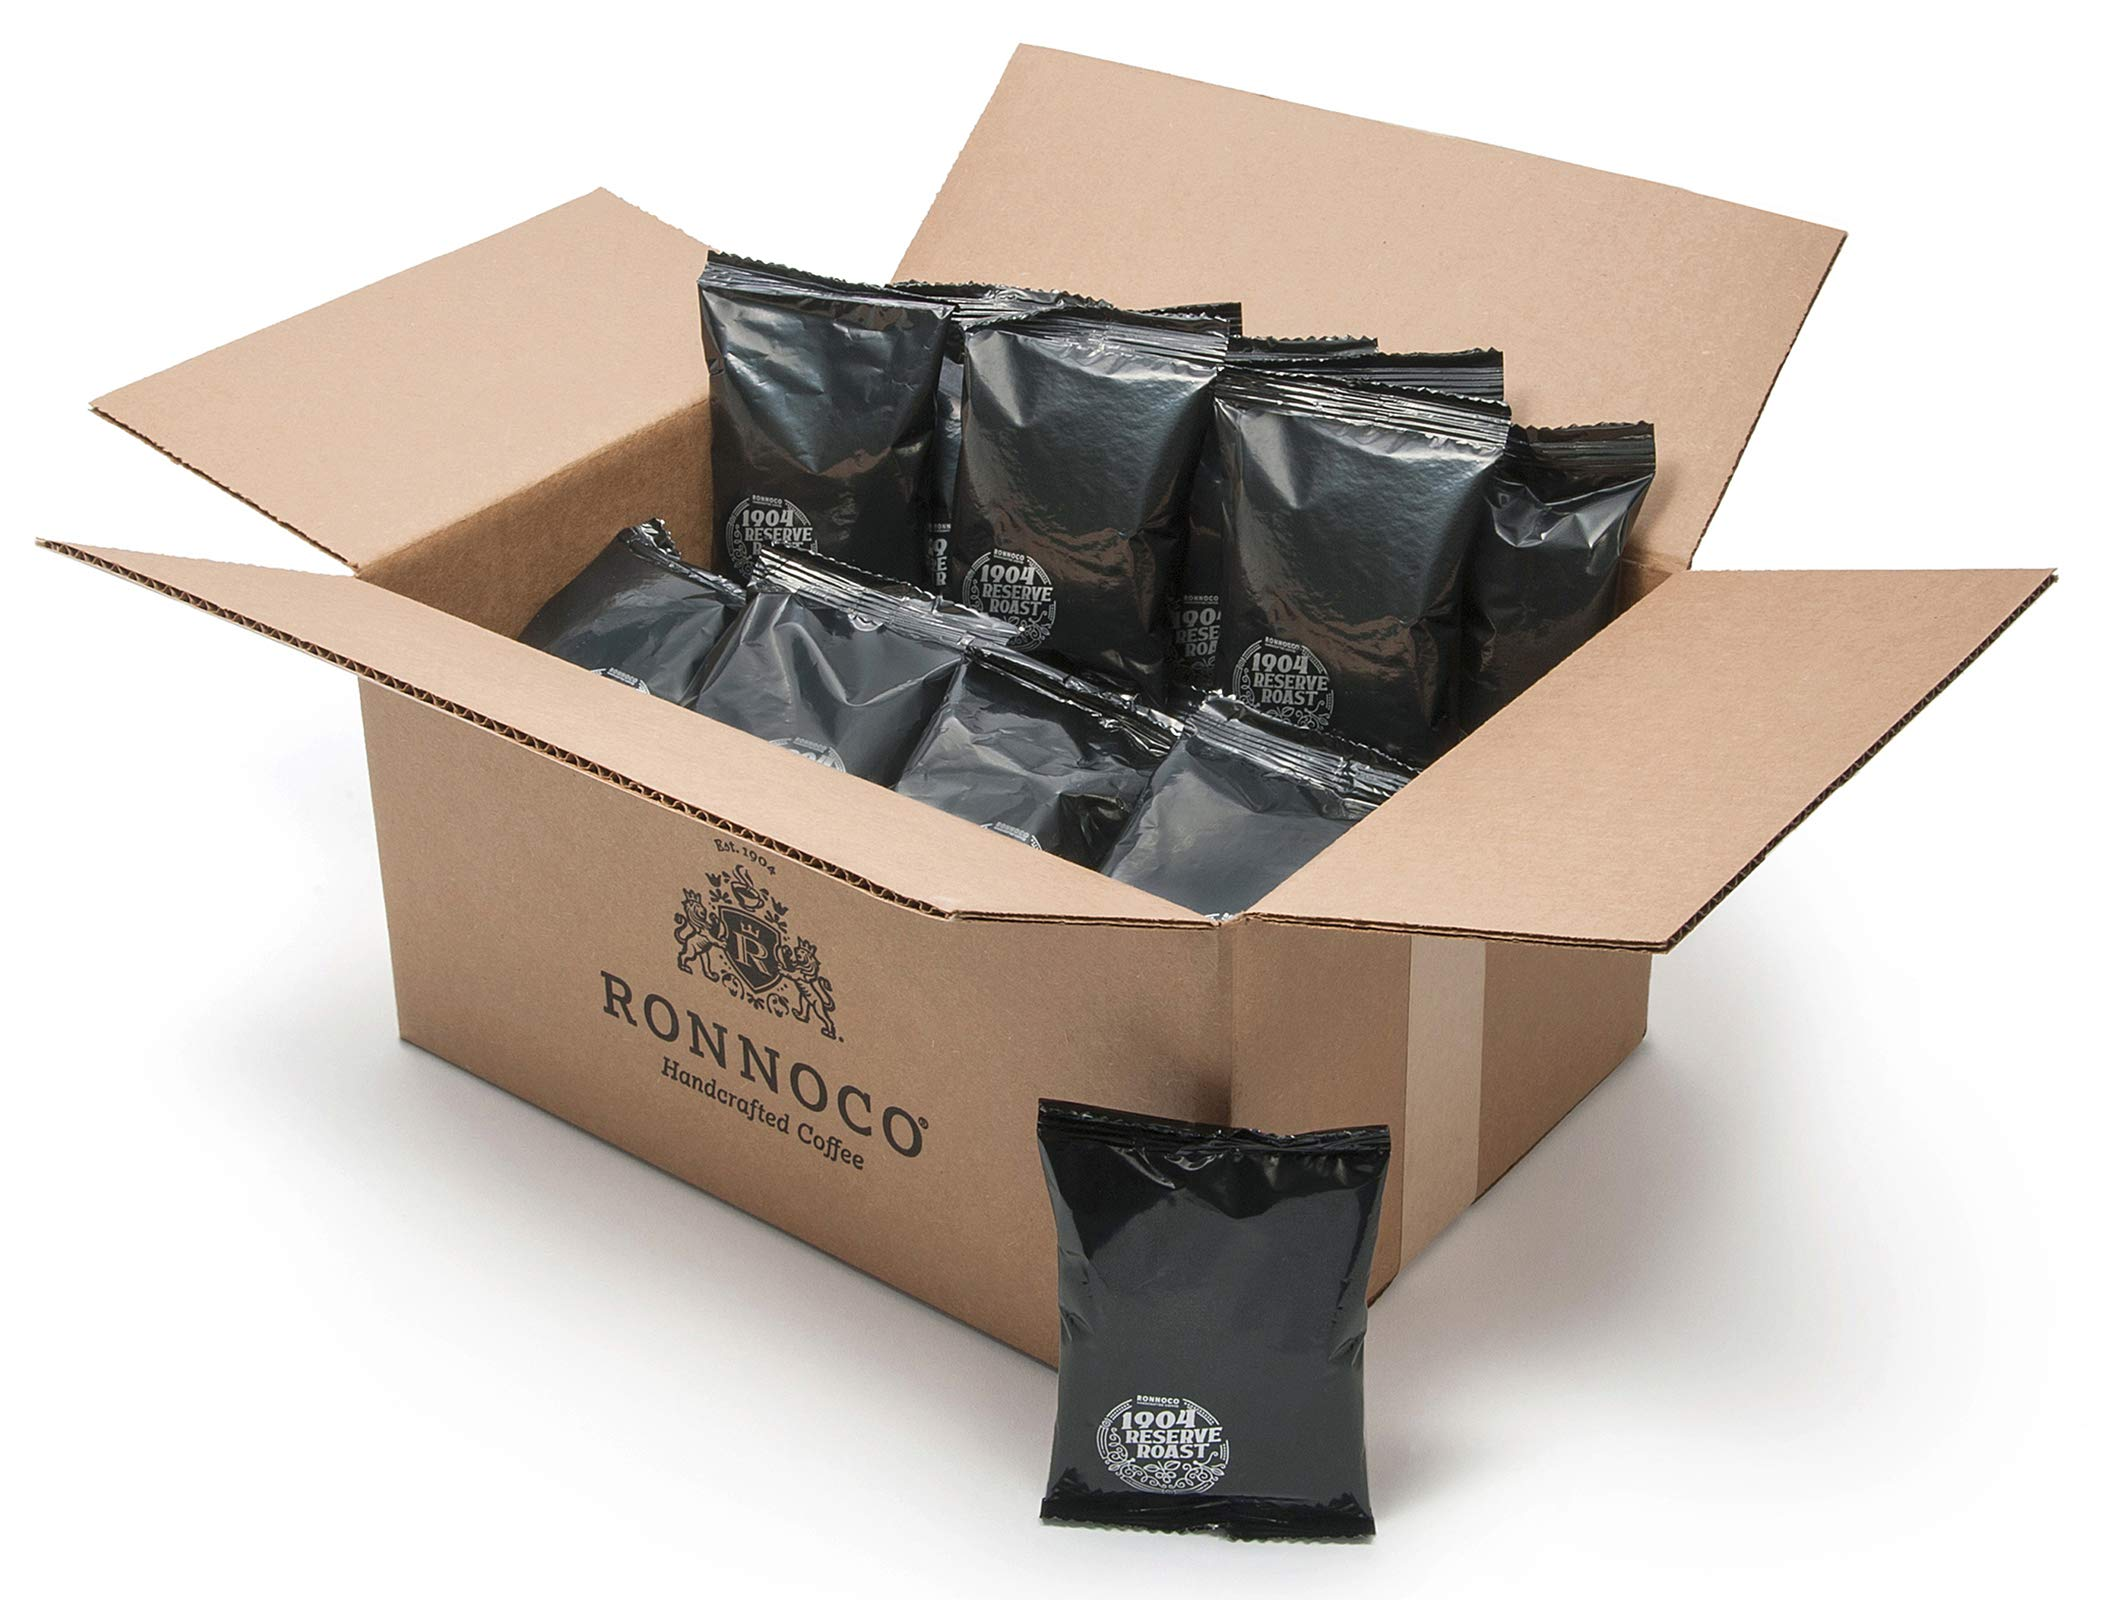 Ronnoco 1904 Reserve Roast, Handcrafted Ground Coffee Fraction Packs, Medium Roast, Bulk Single Pot Bags for Drip Coffee Makers, Individual Packets for Office, Hotel, and Restaurant, 2.5 oz (48 Count)